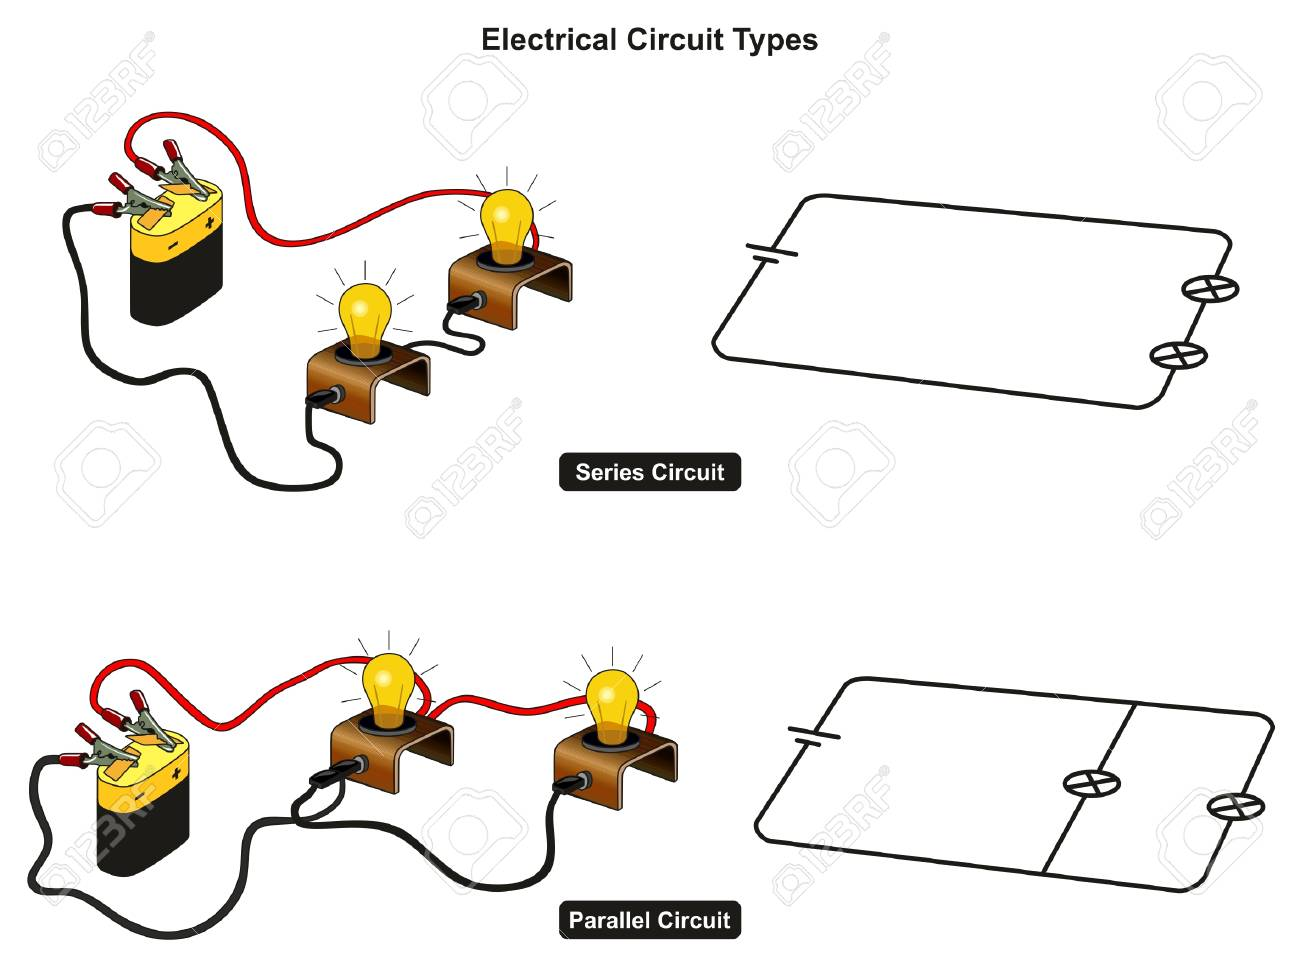 Electrical Circuit Types Infographic Diagram Showing How You ...